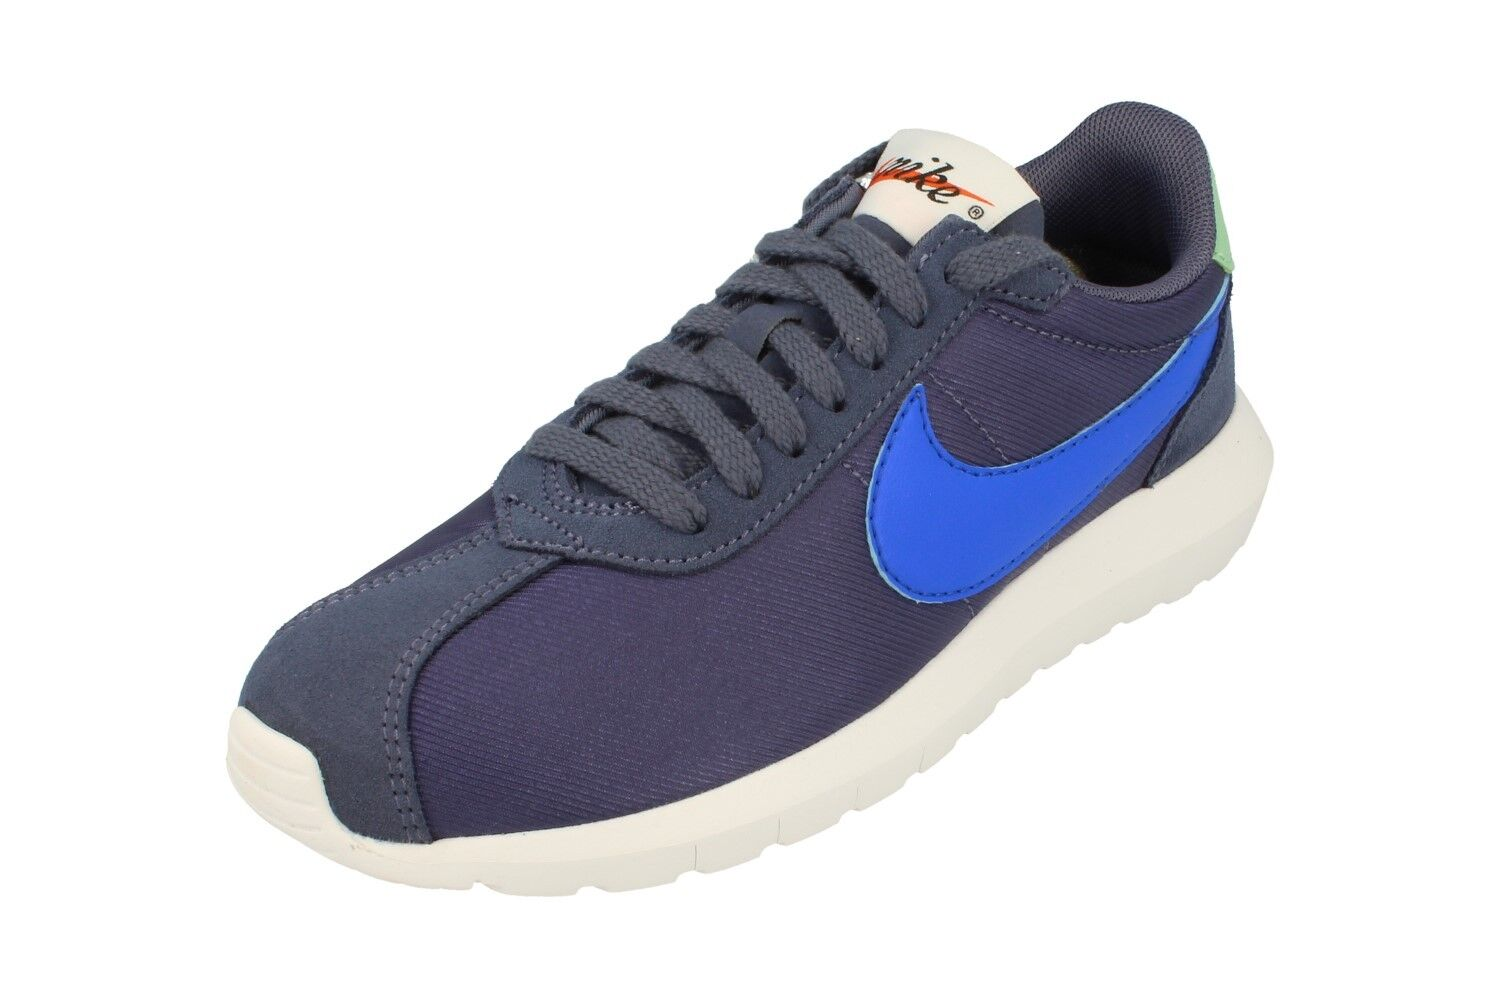 Nike Femme roshe LD-1000 trainers 819843 500 sneakers chaussures